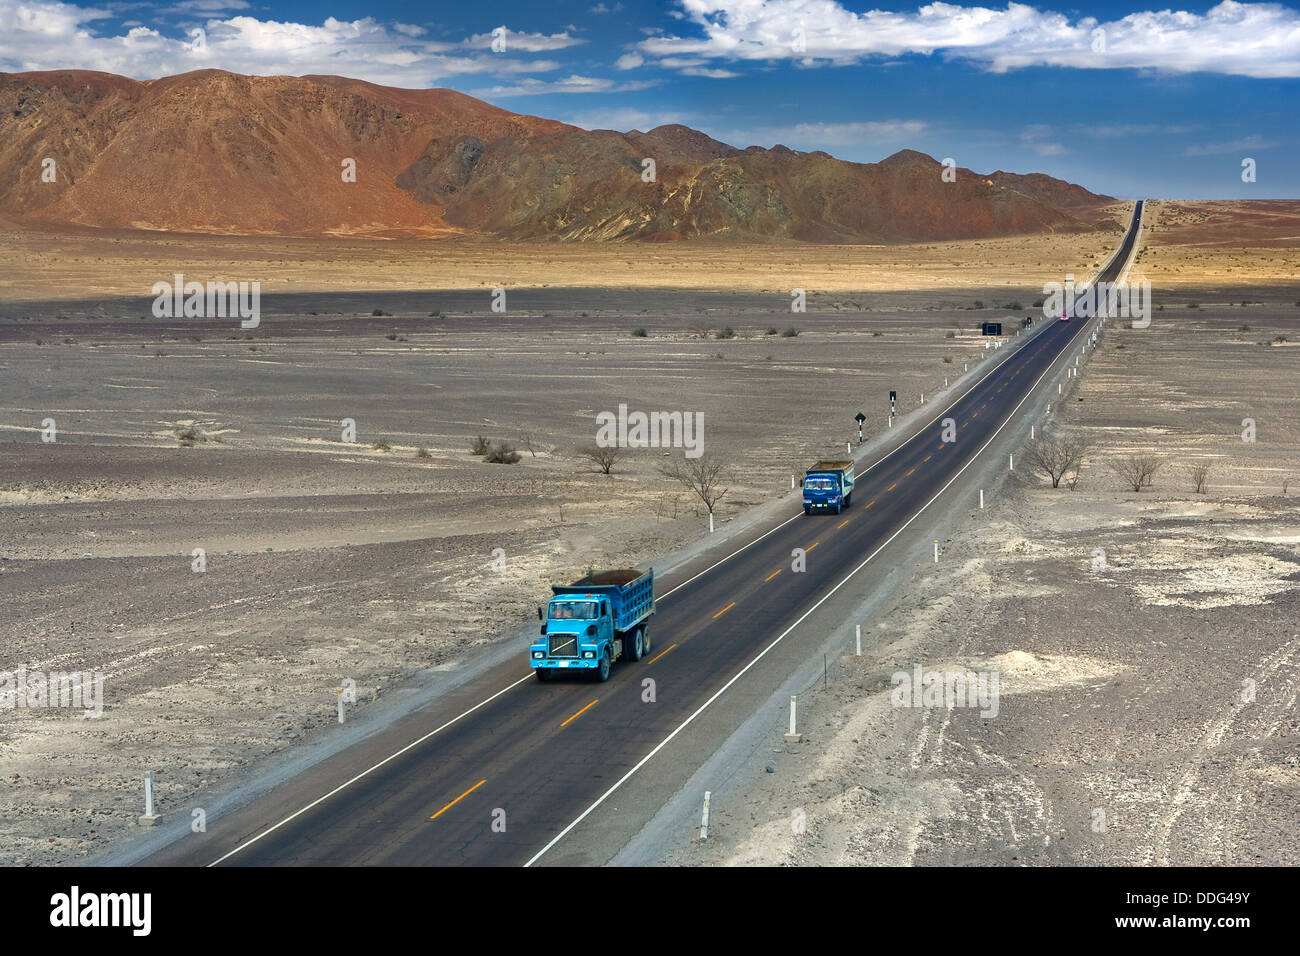 Pan-American highway, longest road in the world, stretching through the South American desert into the distance. - Stock Image